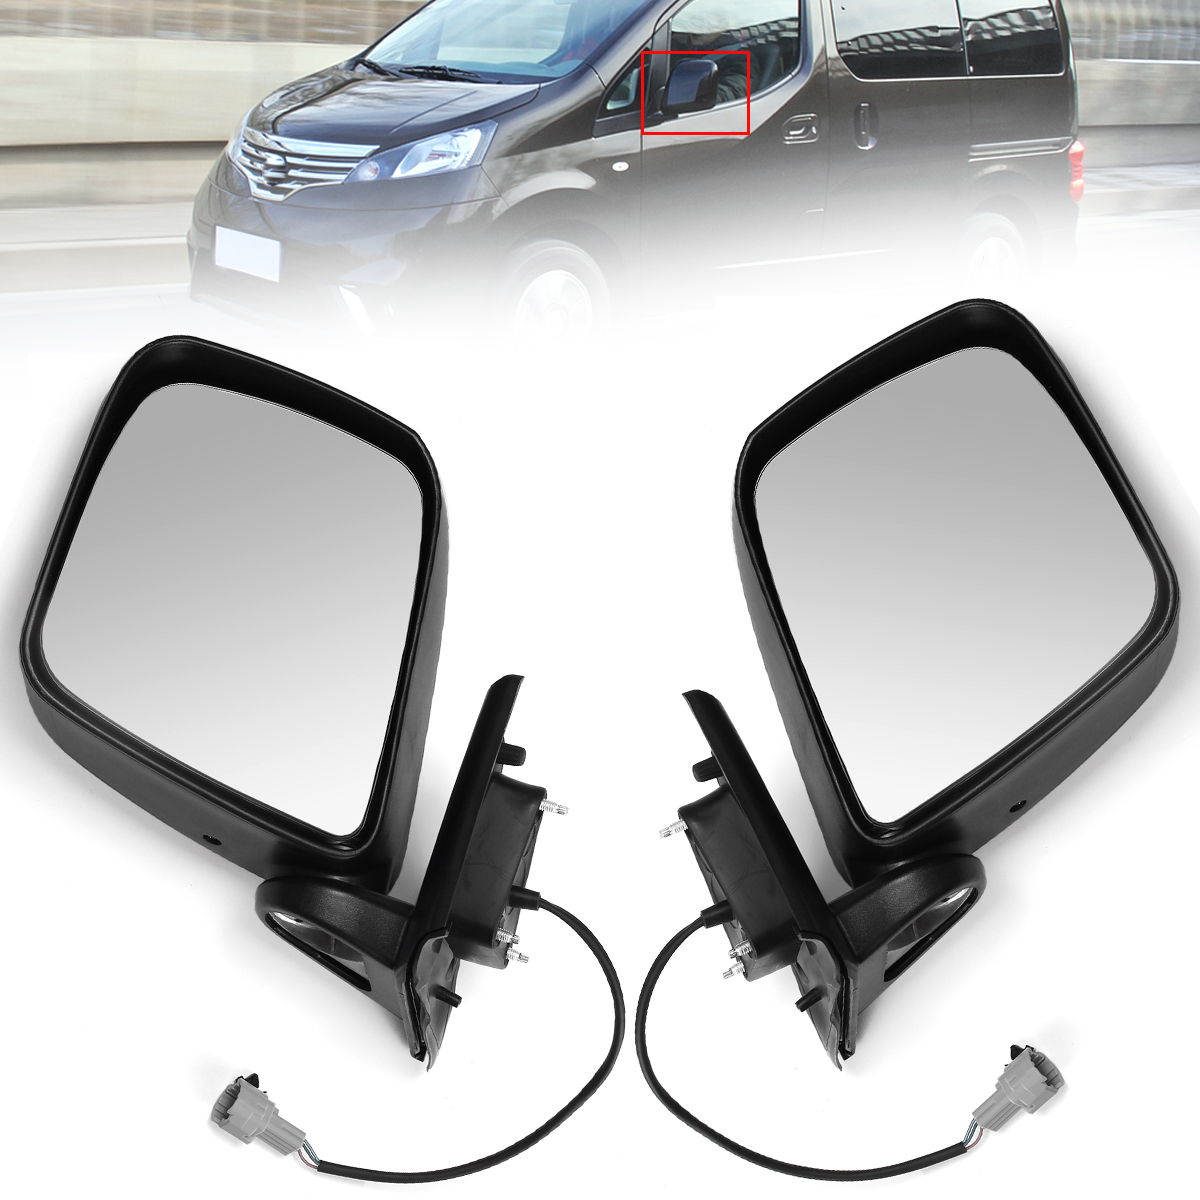 New Left/Right Car Rearview Mirror For Nissan NV200 2010-2016 Car Driver Side Rear View Mirror Passenger Side Electric Rear View daker challenger side mirror pajero sport rear mirror native back mirror